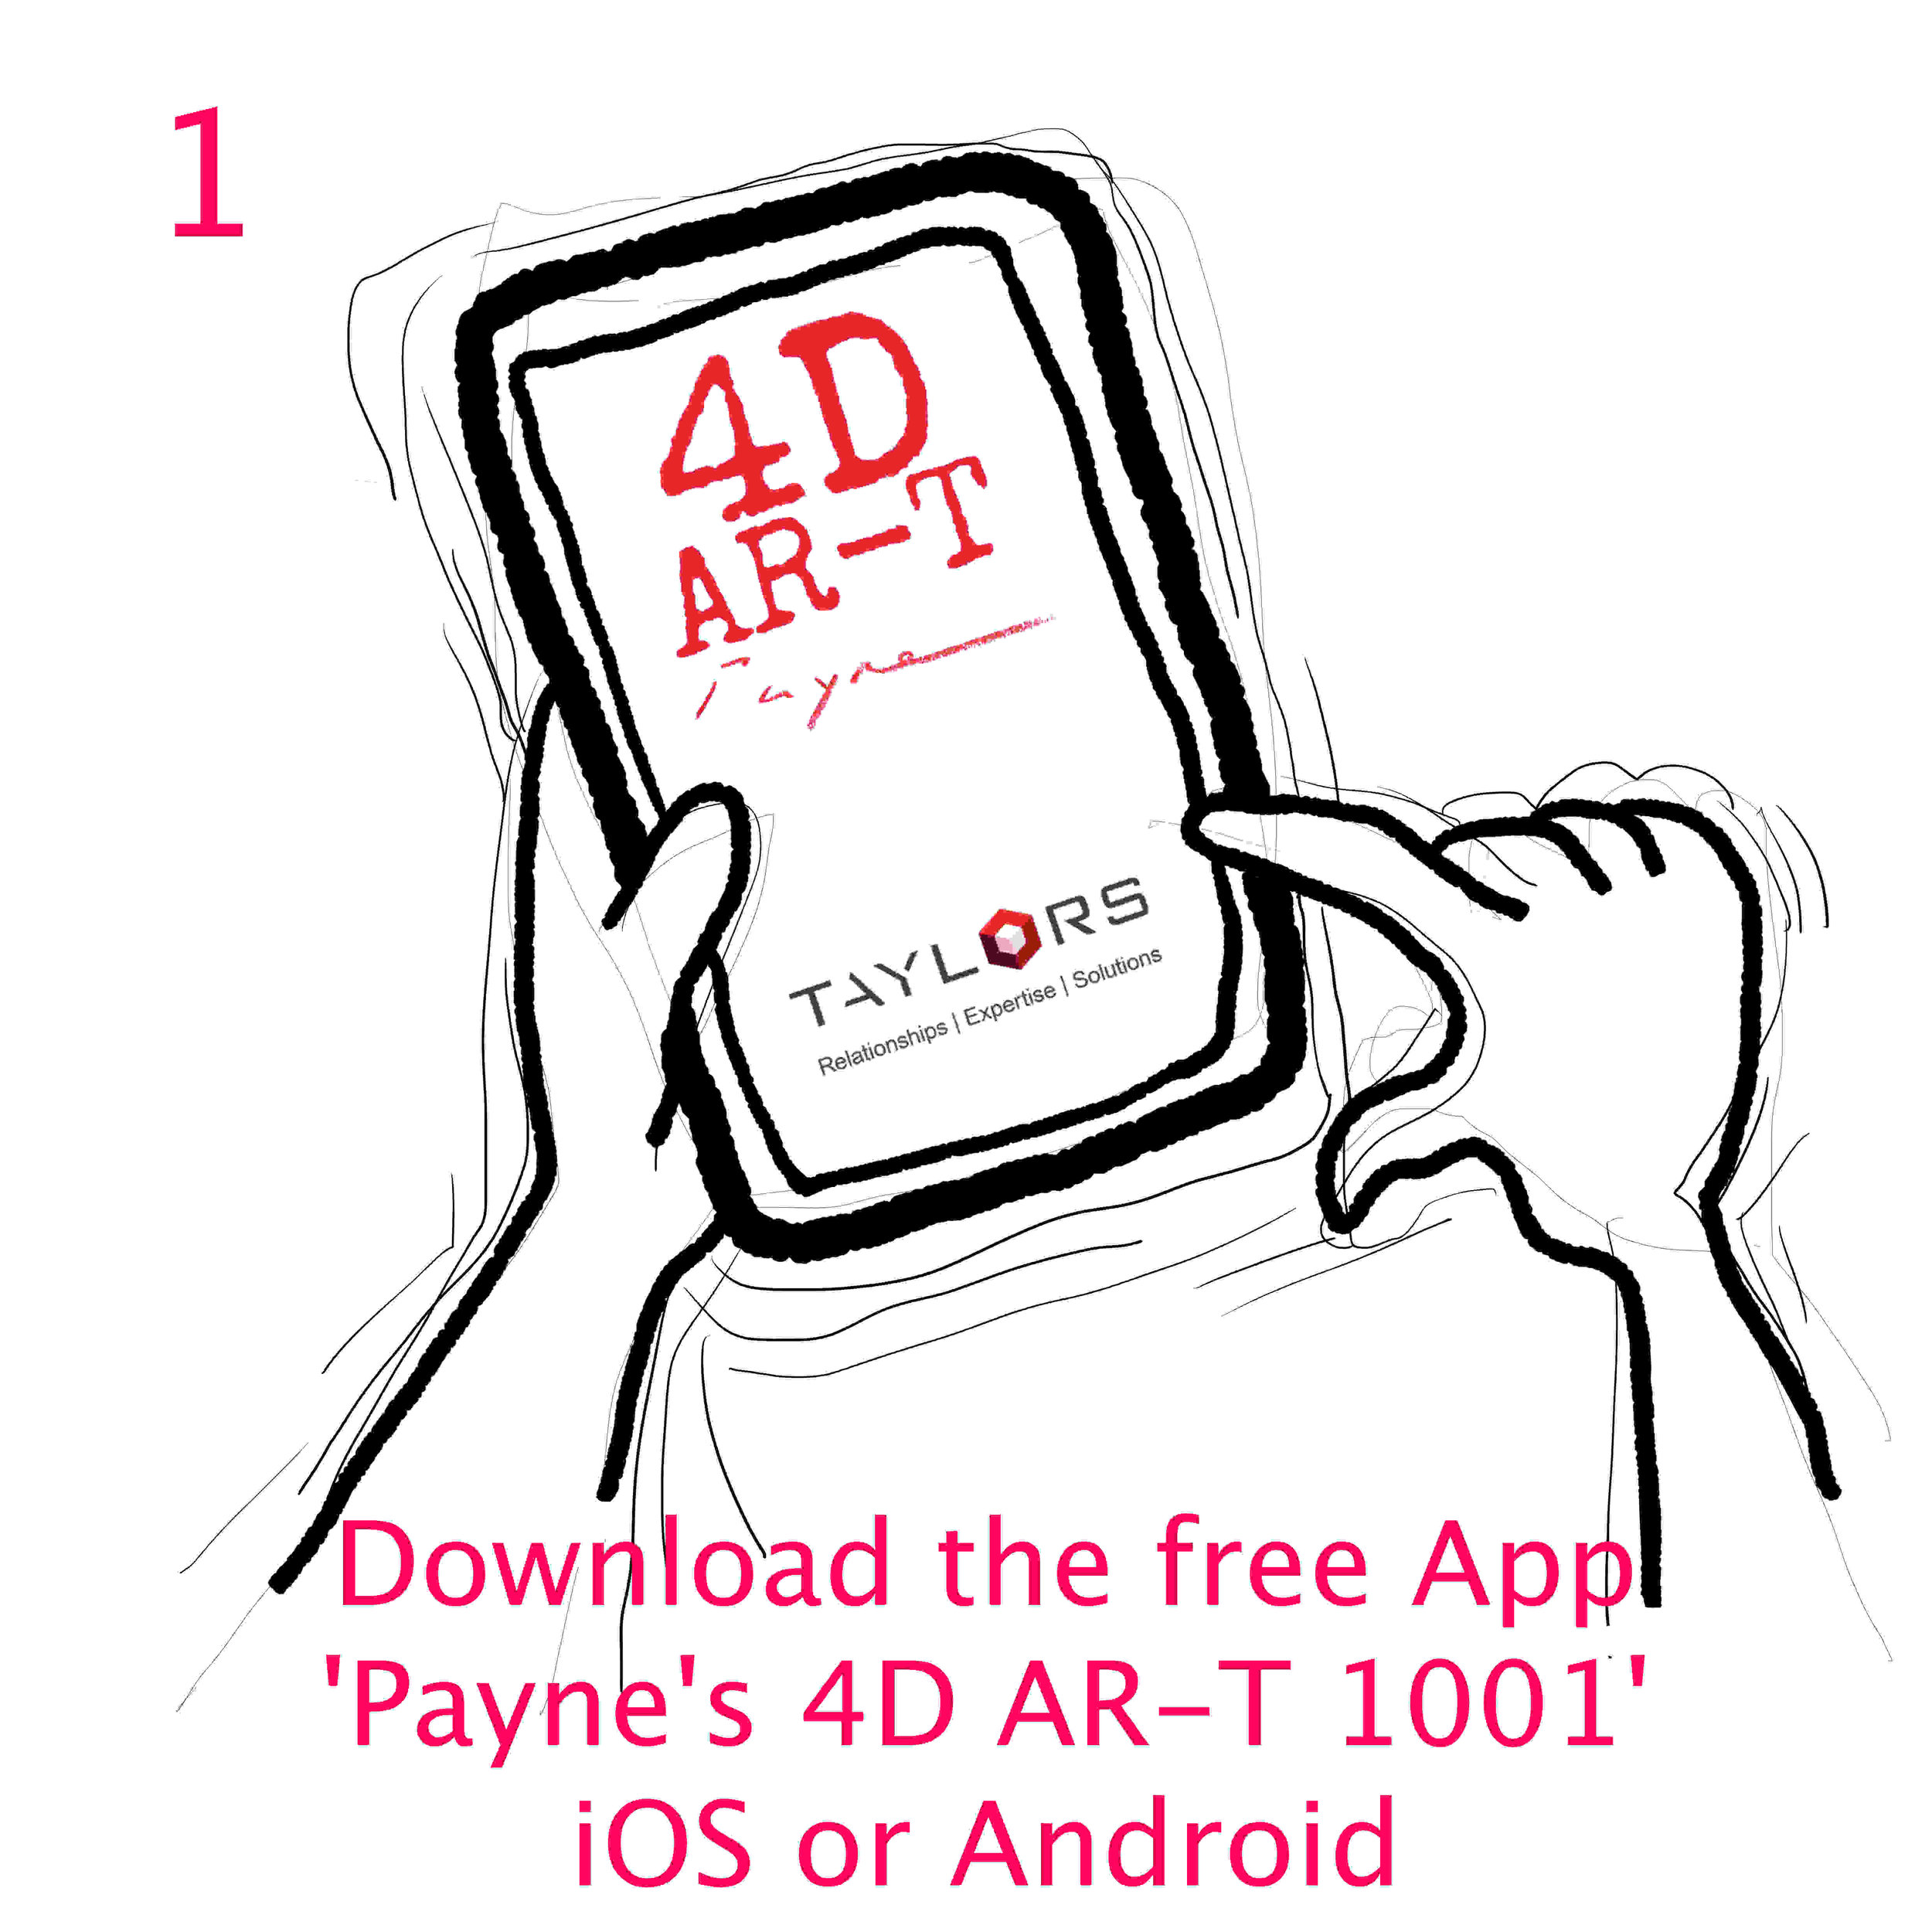 download app 1 v03.jpg